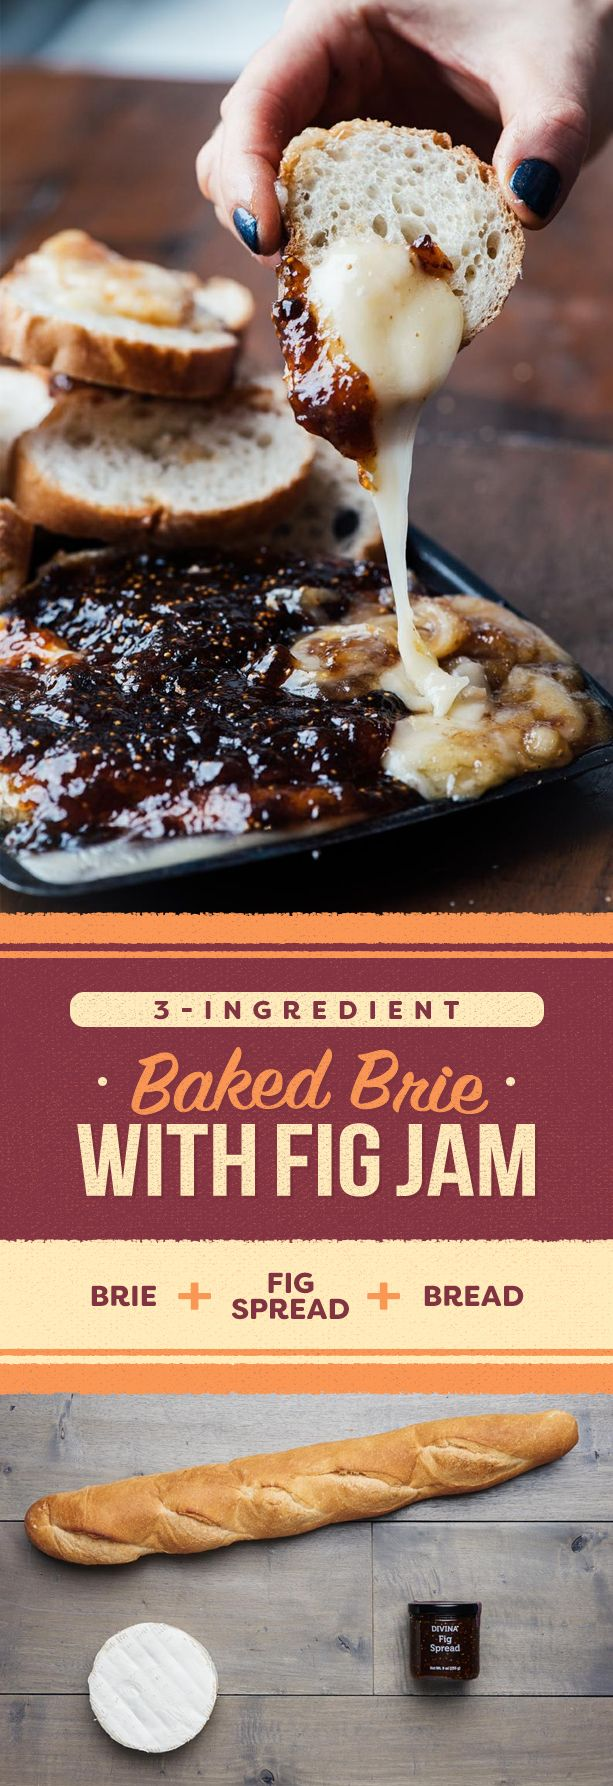 Baked Brie with Fig Jam | 9 Easy 3-Ingredient Appetizers To Make For Thanksgiving                                                                                                                                                                                 More